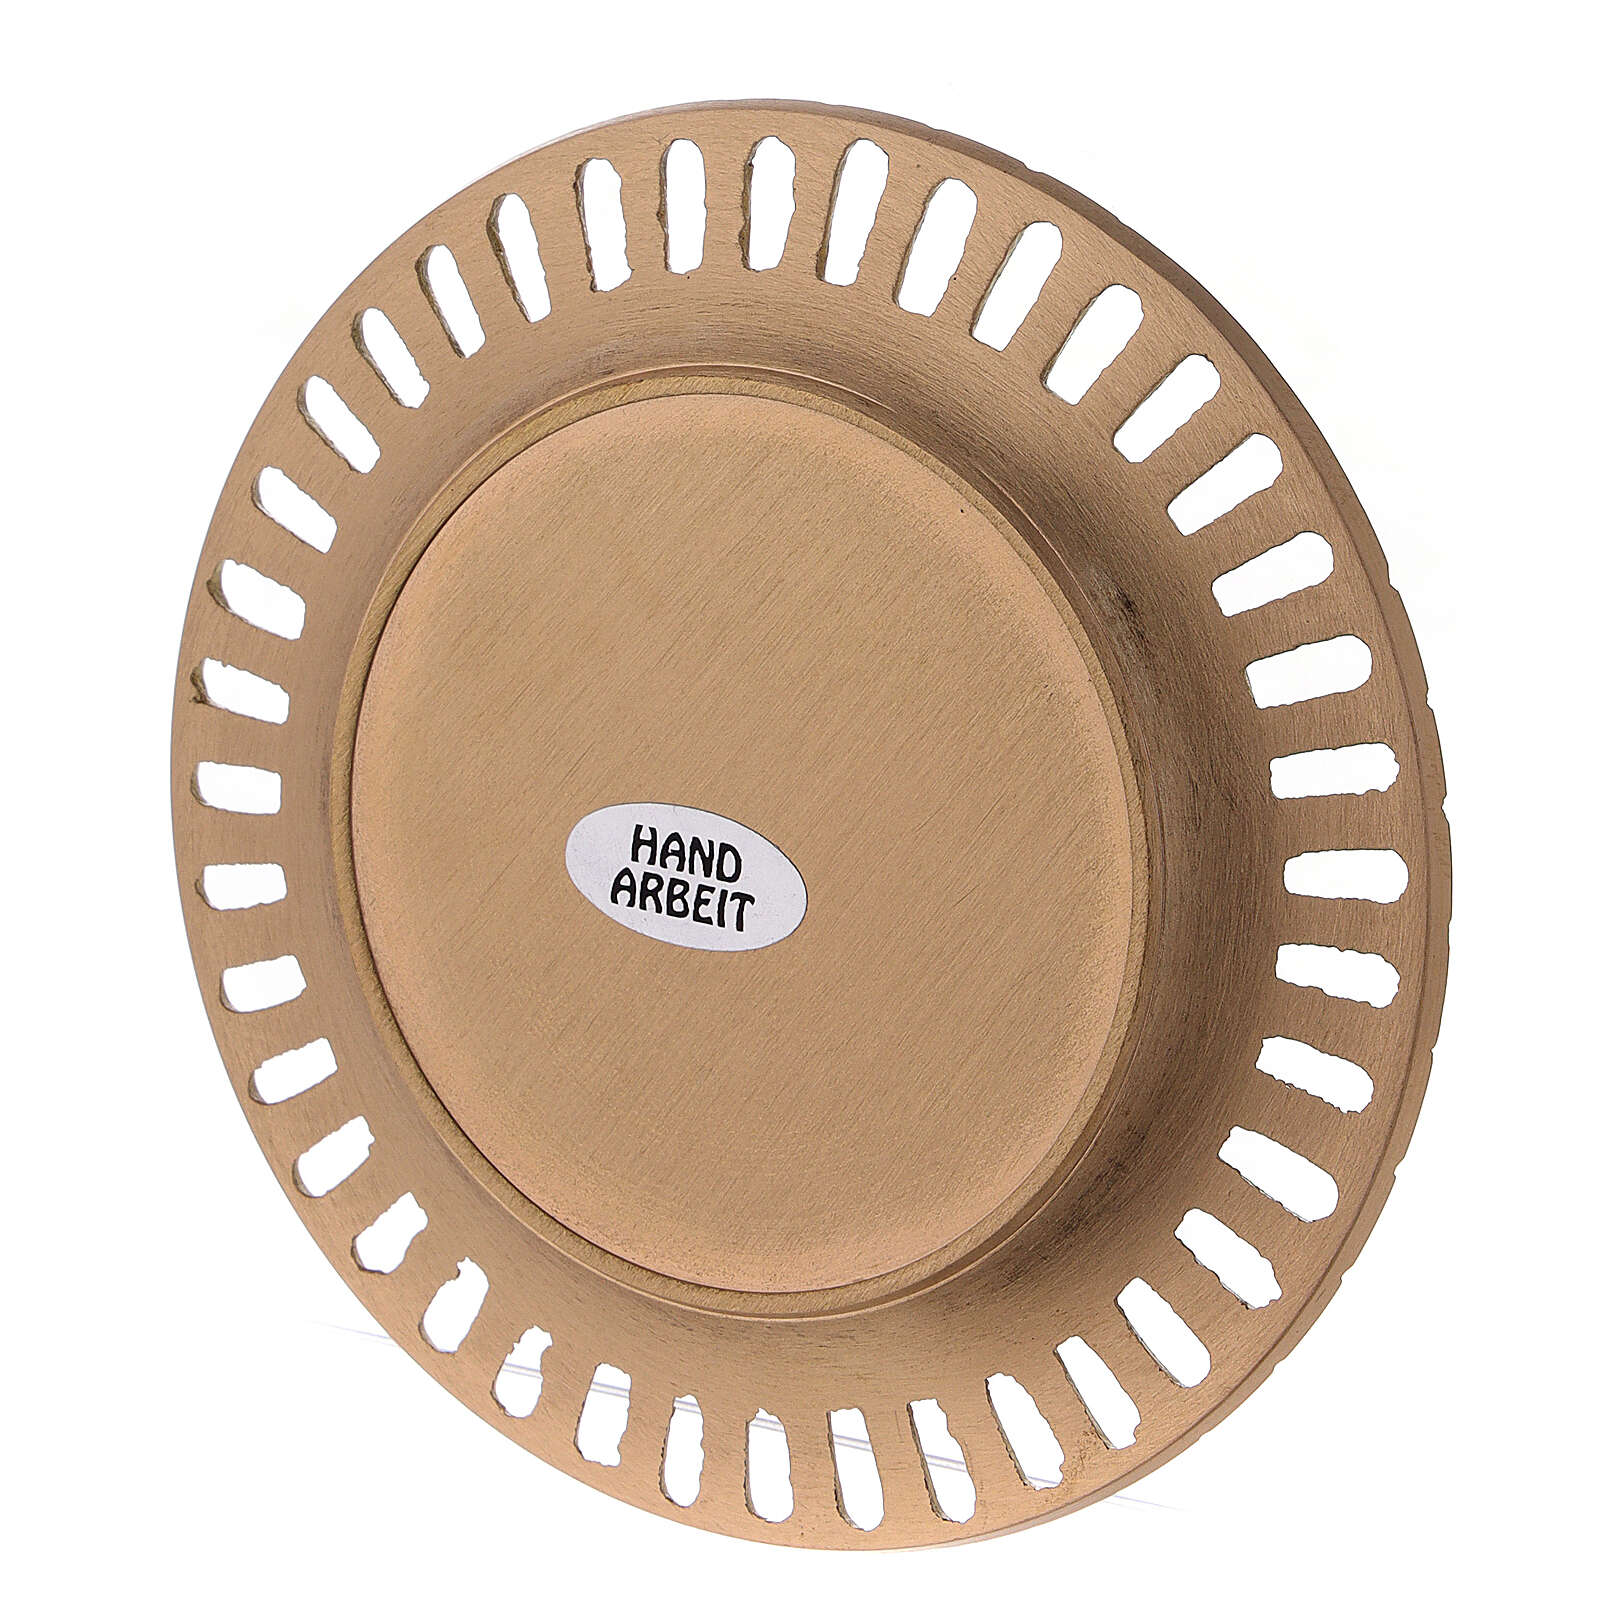 Perforated plate for candles gold plated brass satin finish 4 1/4 in 3